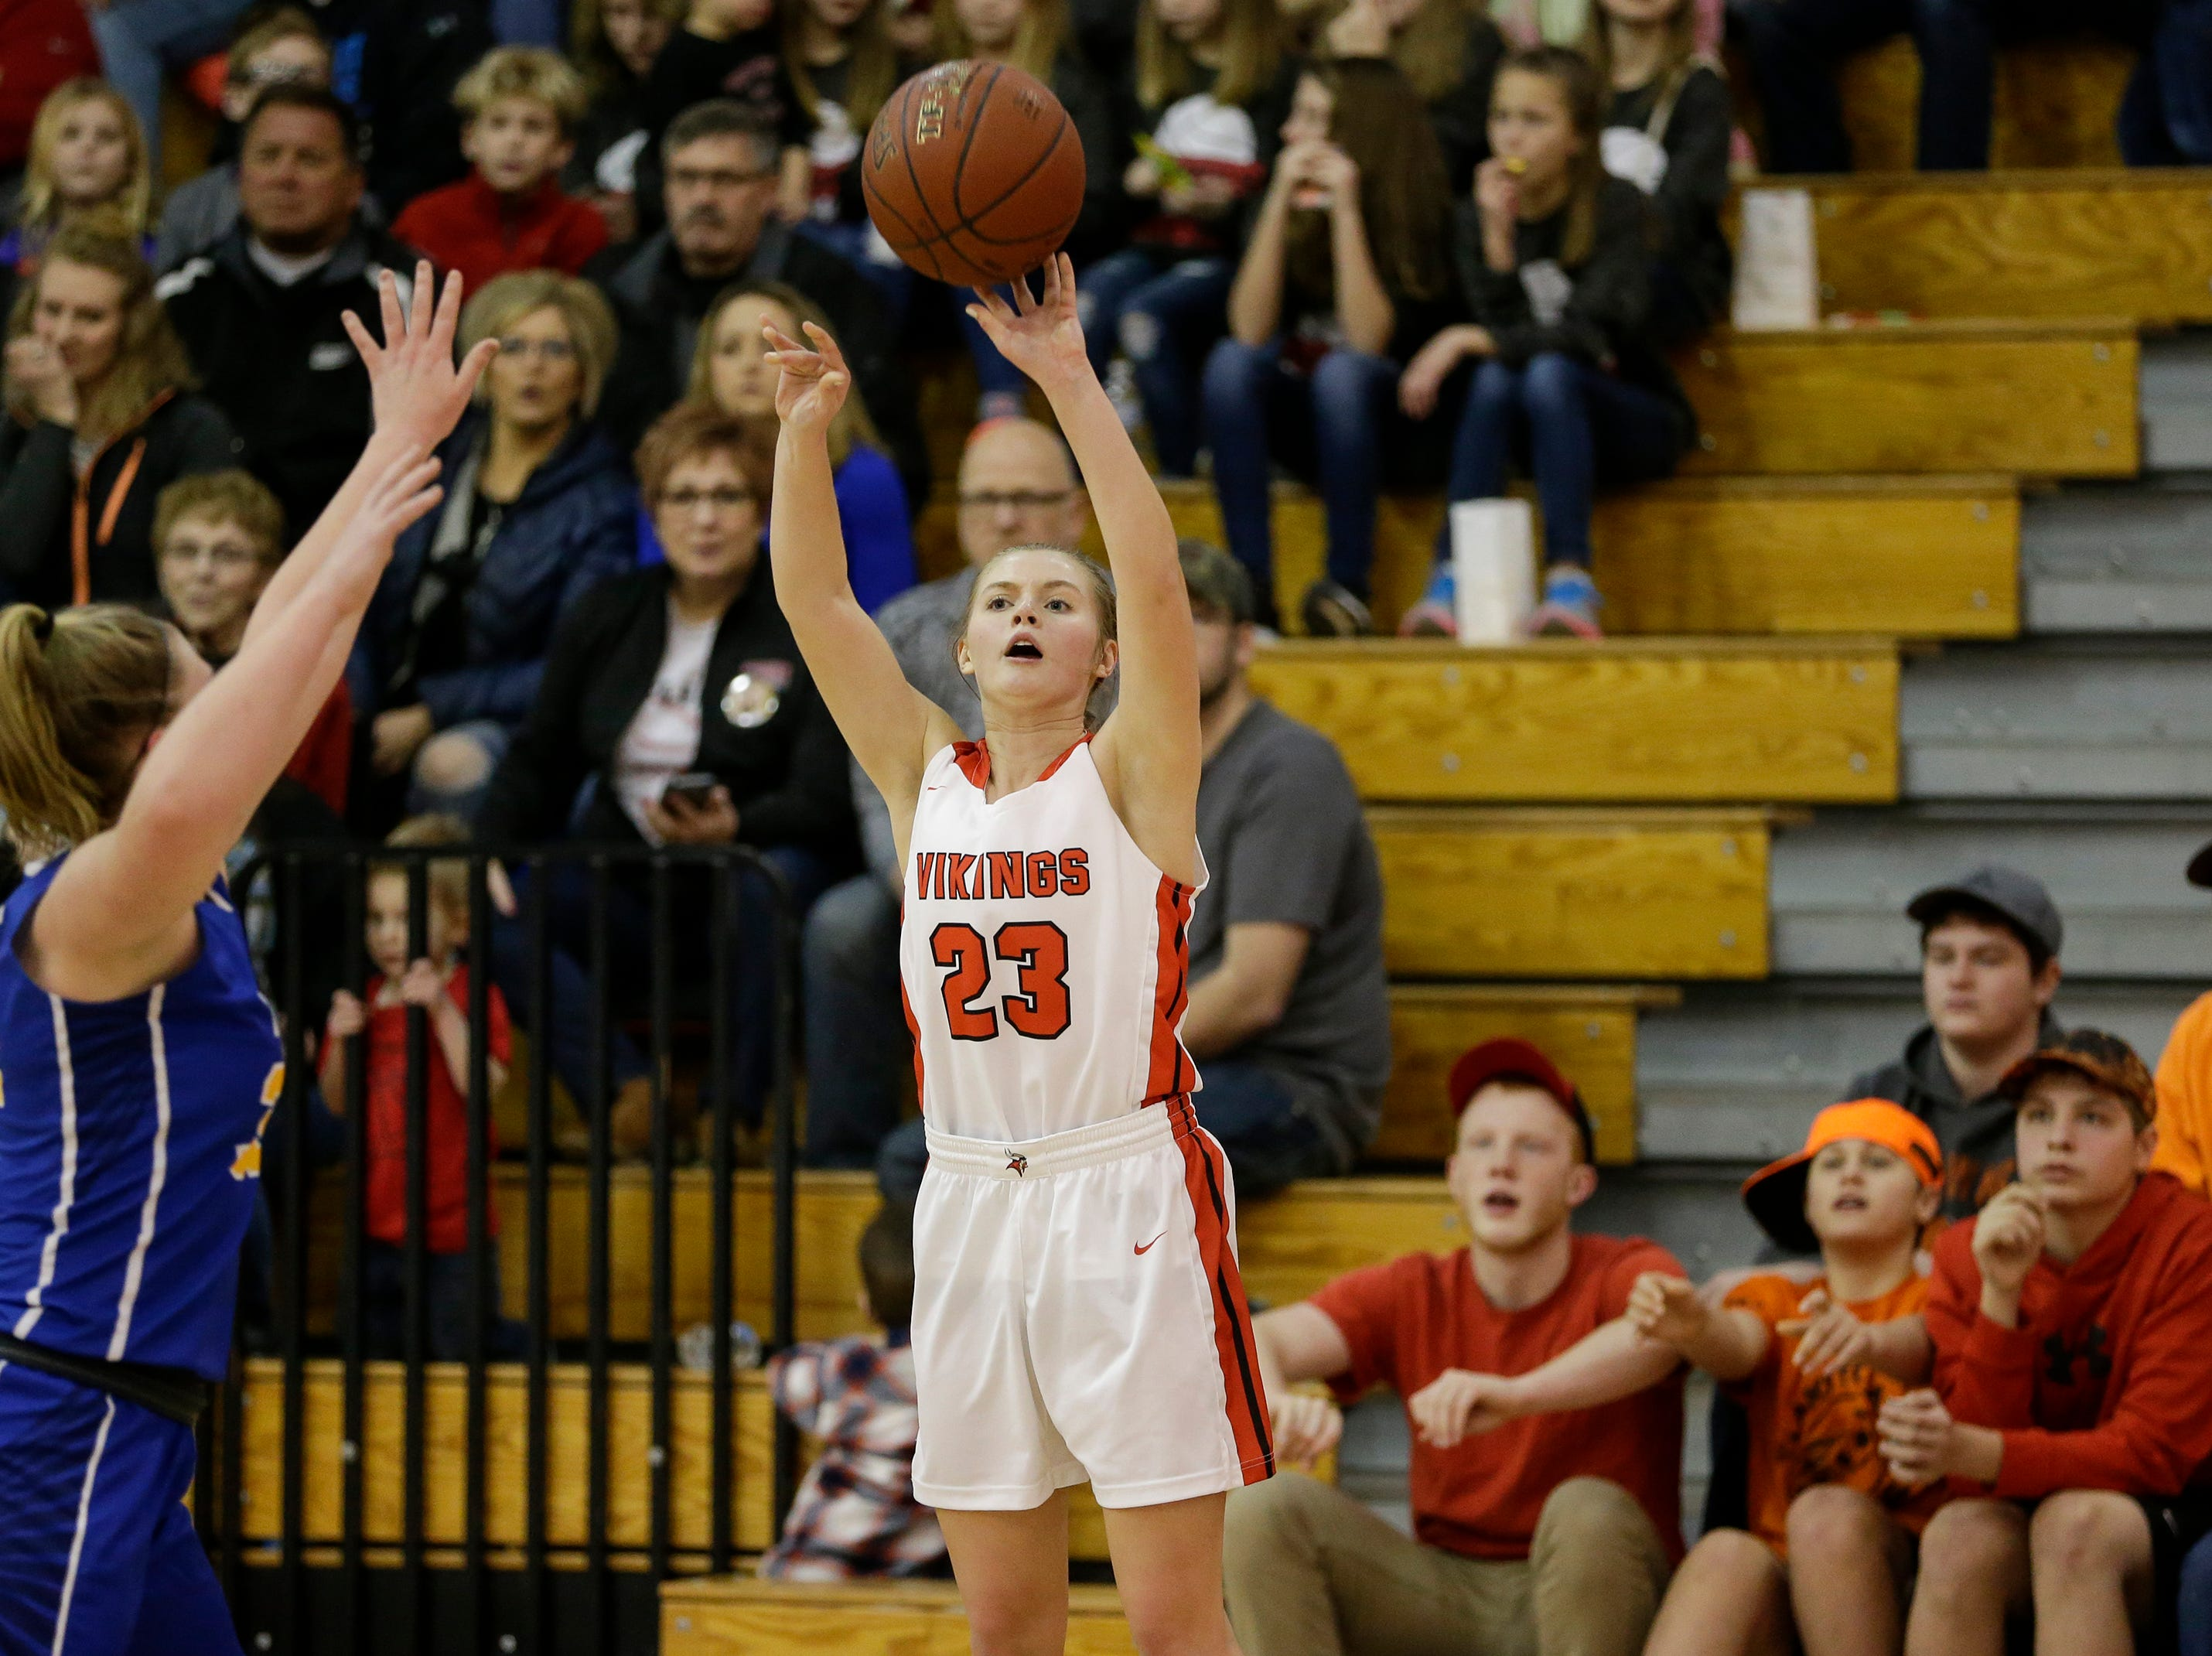 Valders' Madison Sabel shoots against Howards Grove in a non-conference game at Valders High School Saturday, January 19, 2019, in Valders, Wis. Joshua Clark/USA TODAY NETWORK-Wisconsin